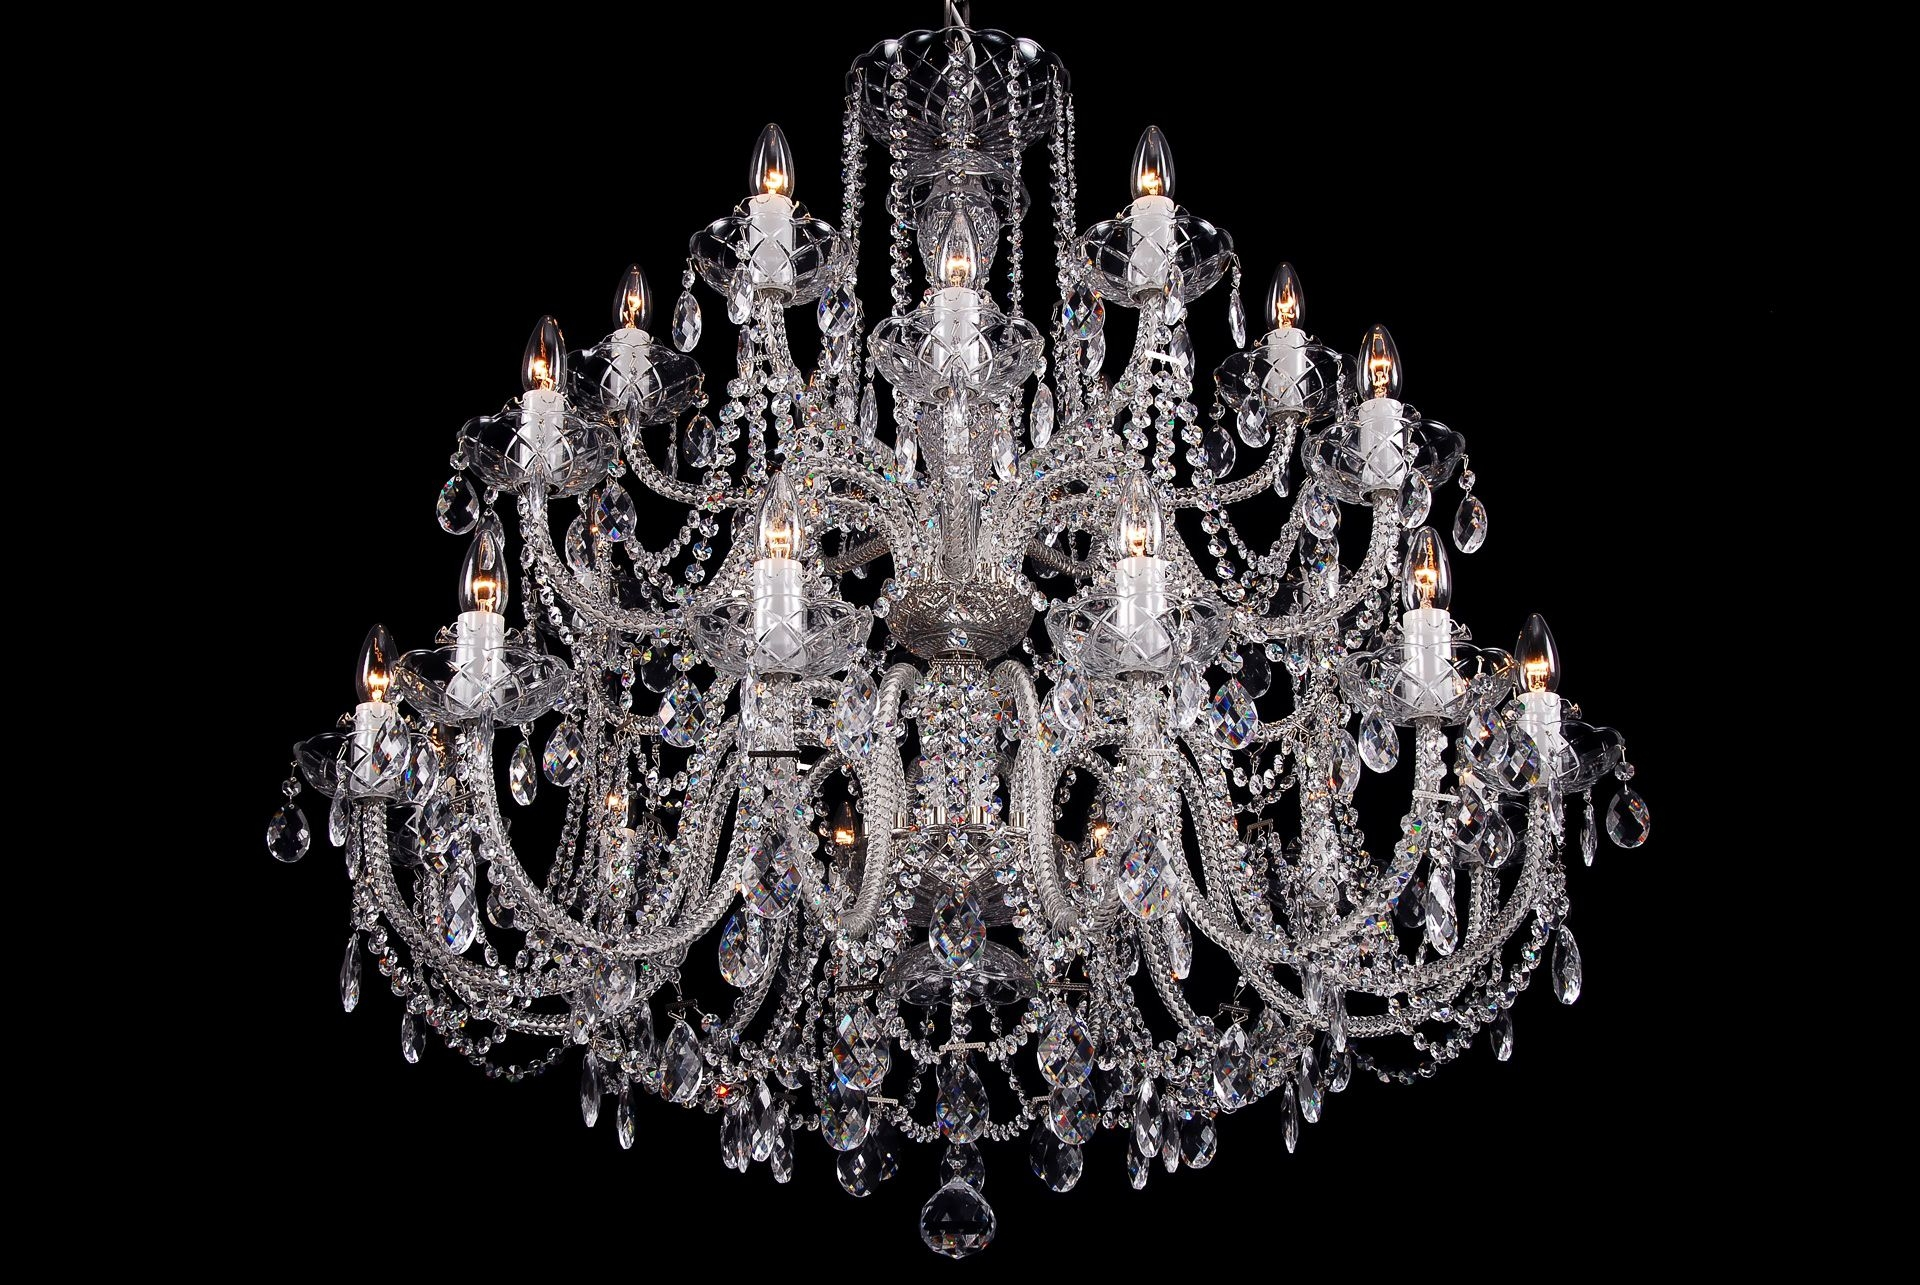 The Largest Clear Crystal Chandelier With Silver Coloured Metal Regarding Huge Crystal Chandelier (View 13 of 15)